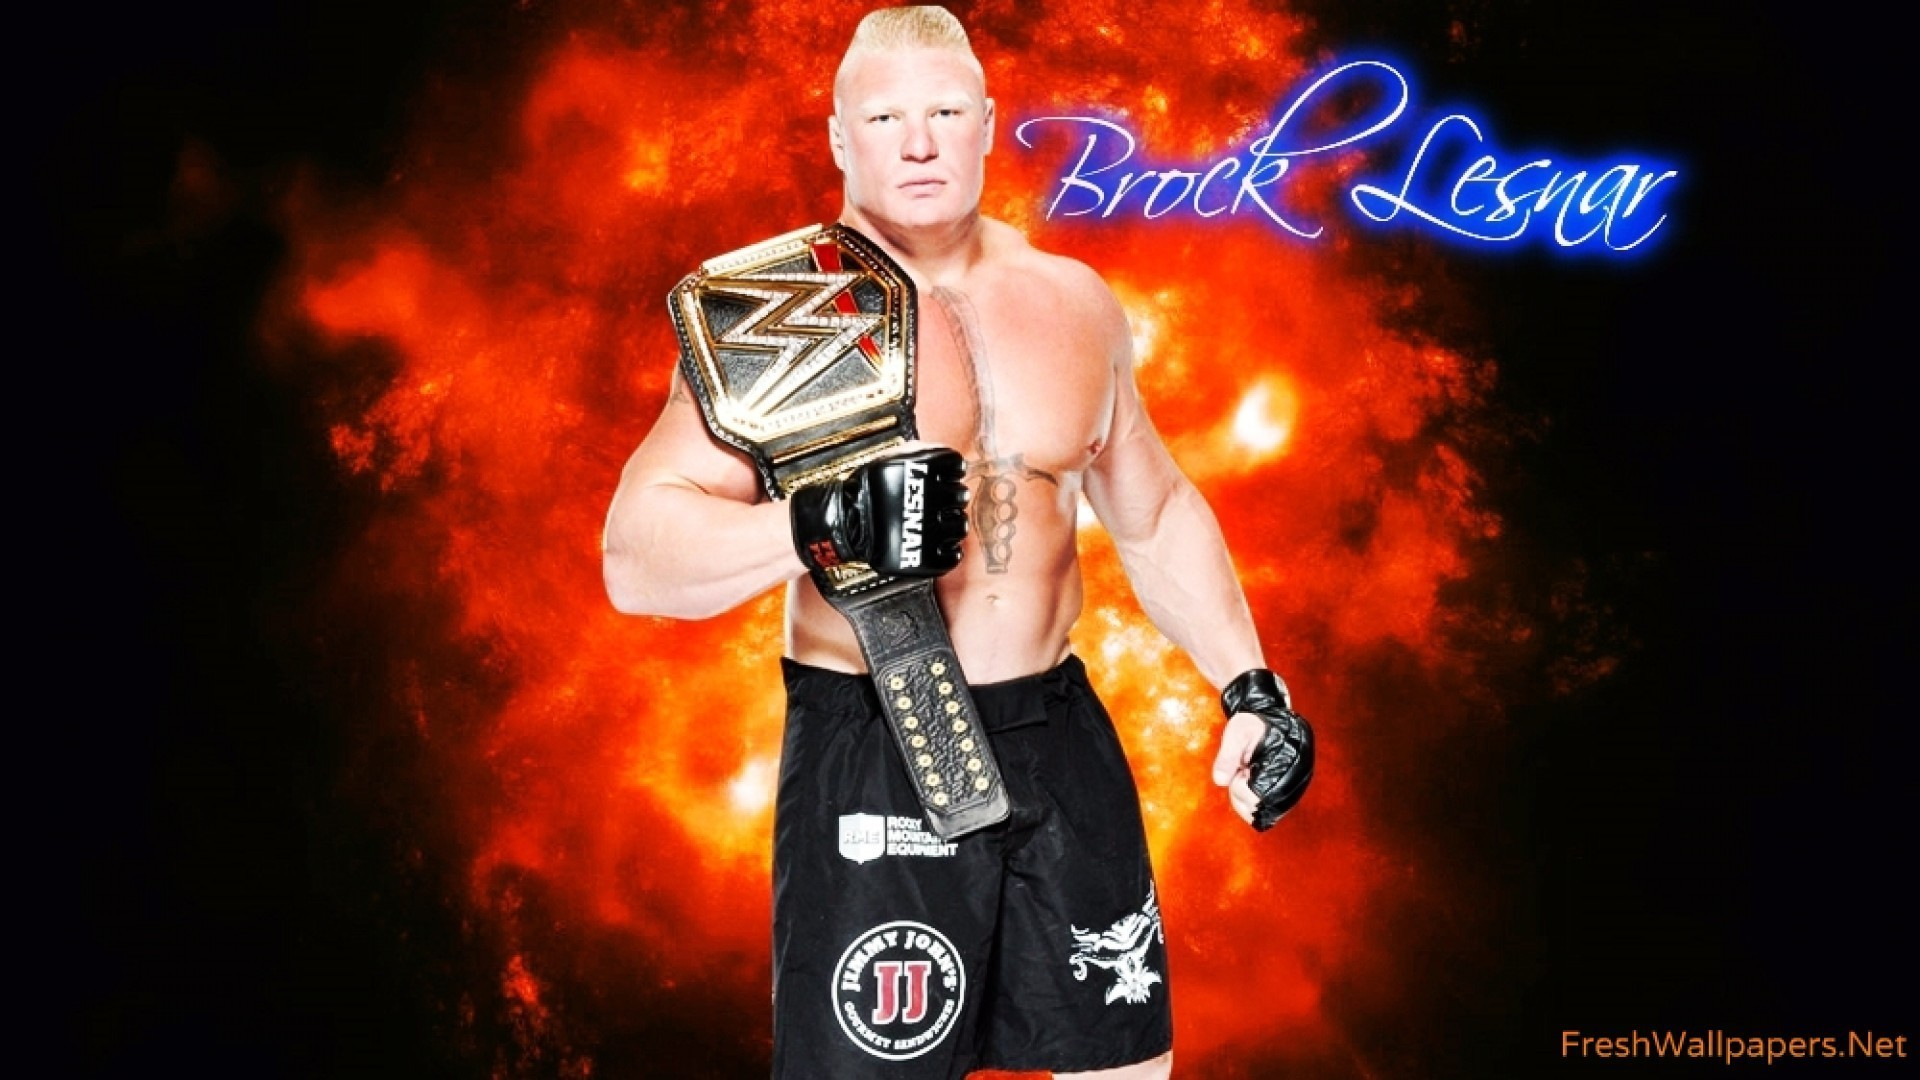 1920x1080 wwe brock lesnar 2018 hd wallpaper 77 images .